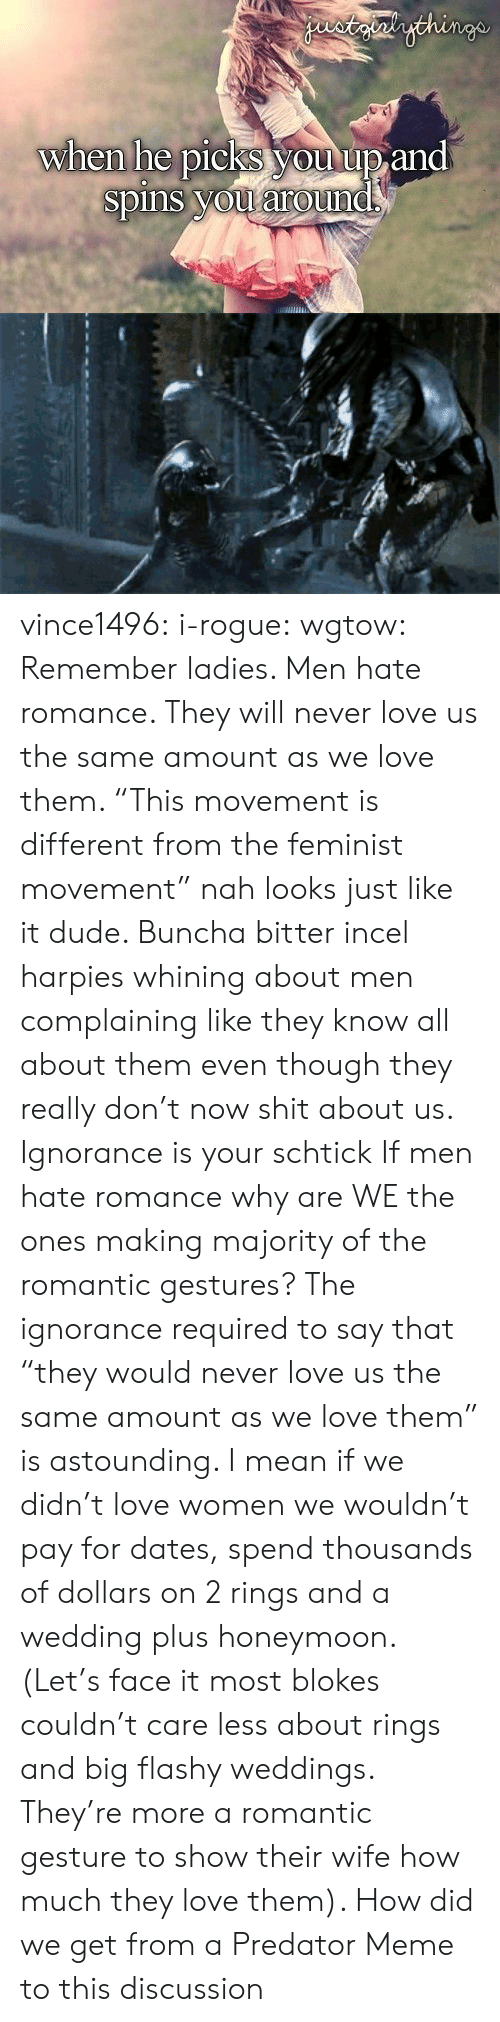 "astounding: staialythinge  when he picks you up and  spins you around vince1496:  i-rogue:  wgtow:  Remember ladies. Men hate romance. They will never love us the same amount as we love them.   ""This movement is different from the feminist movement"" nah looks just like it dude. Buncha bitter incel harpies whining about men complaining like they know all about them even though they really don't now shit about us. Ignorance is your schtick  If men hate romance why are WE the ones making majority of the romantic gestures? The ignorance required to say that ""they would never love us the same amount as we love them"" is astounding. I mean if we didn't love women we wouldn't pay for dates, spend thousands of dollars on 2 rings and a wedding plus honeymoon. (Let's face it most blokes couldn't care less about rings and big flashy weddings. They're more a romantic gesture to show their wife how much they love them).   How did we get from a Predator Meme to this discussion"